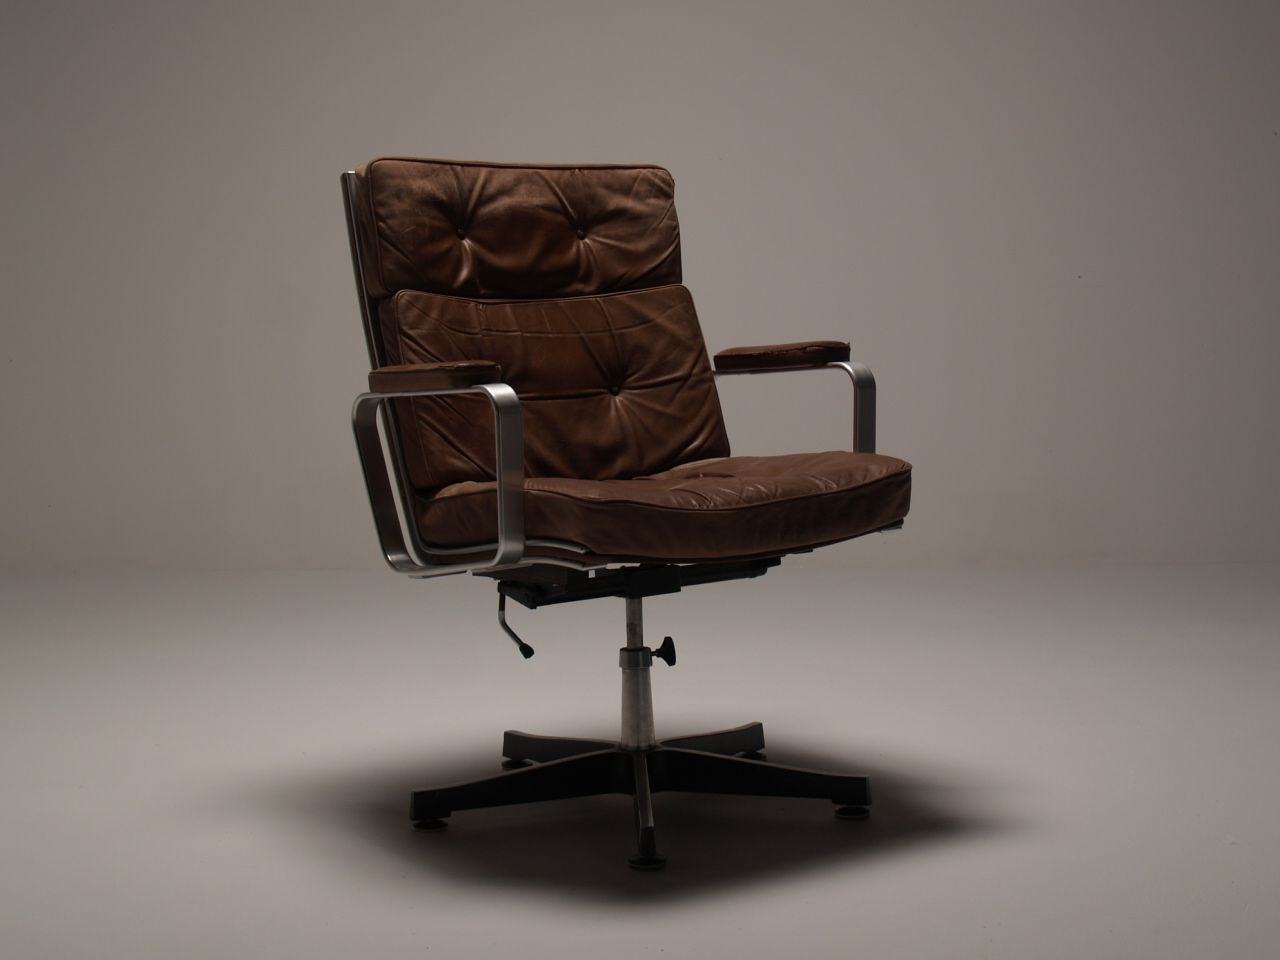 vintage office chair. Scandinavian Vintage Office Swivel Chair In Brilliantly Worn And Retro Brown Leather With A Strong, F